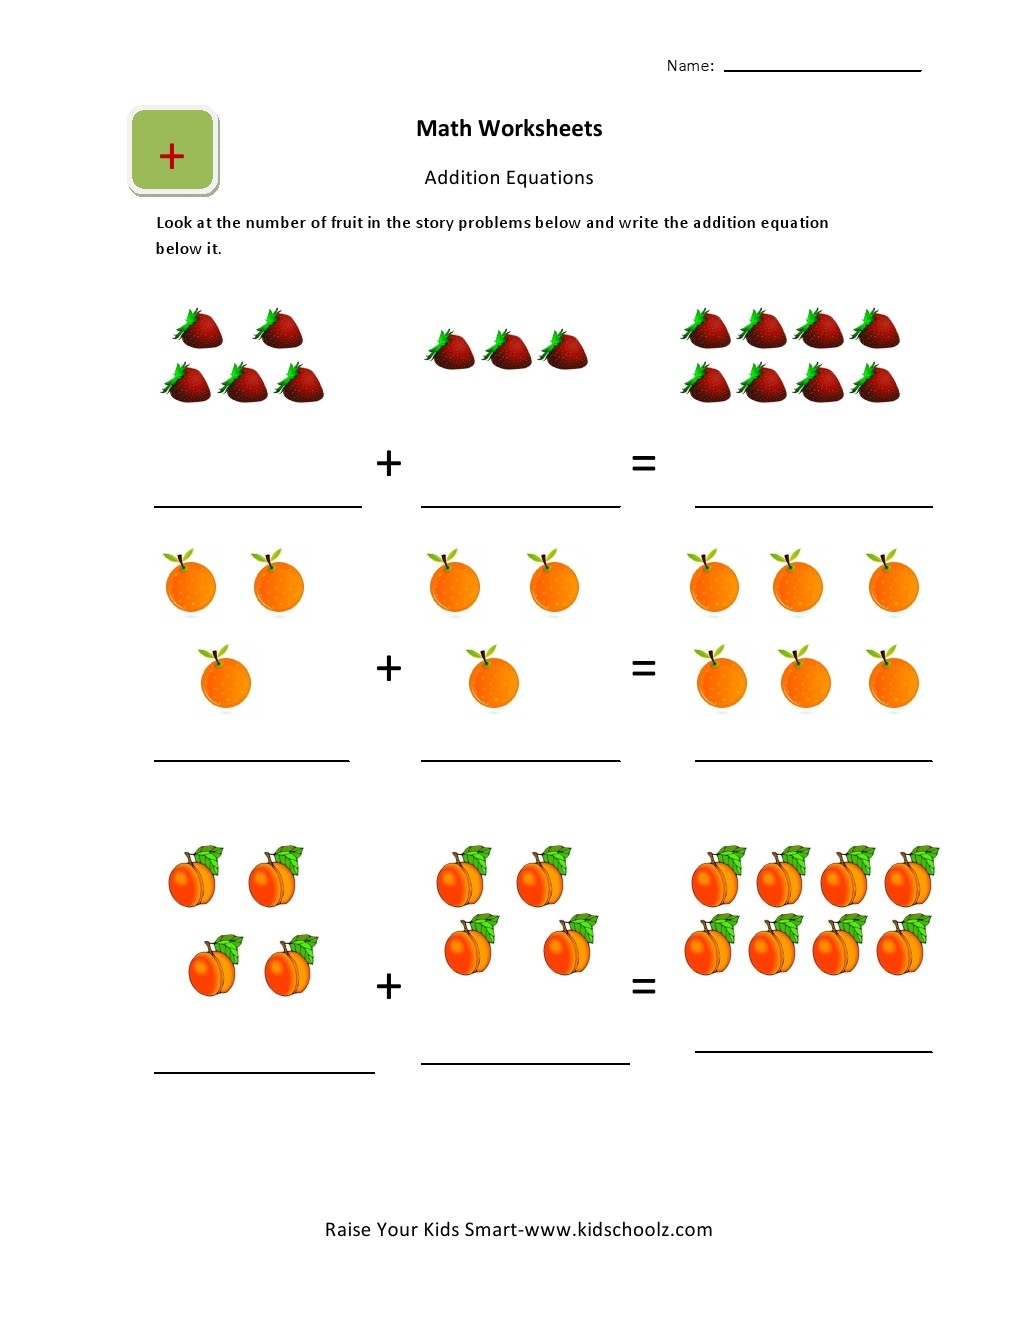 UKG-Basic Picture Addition Worksheets for Kids -